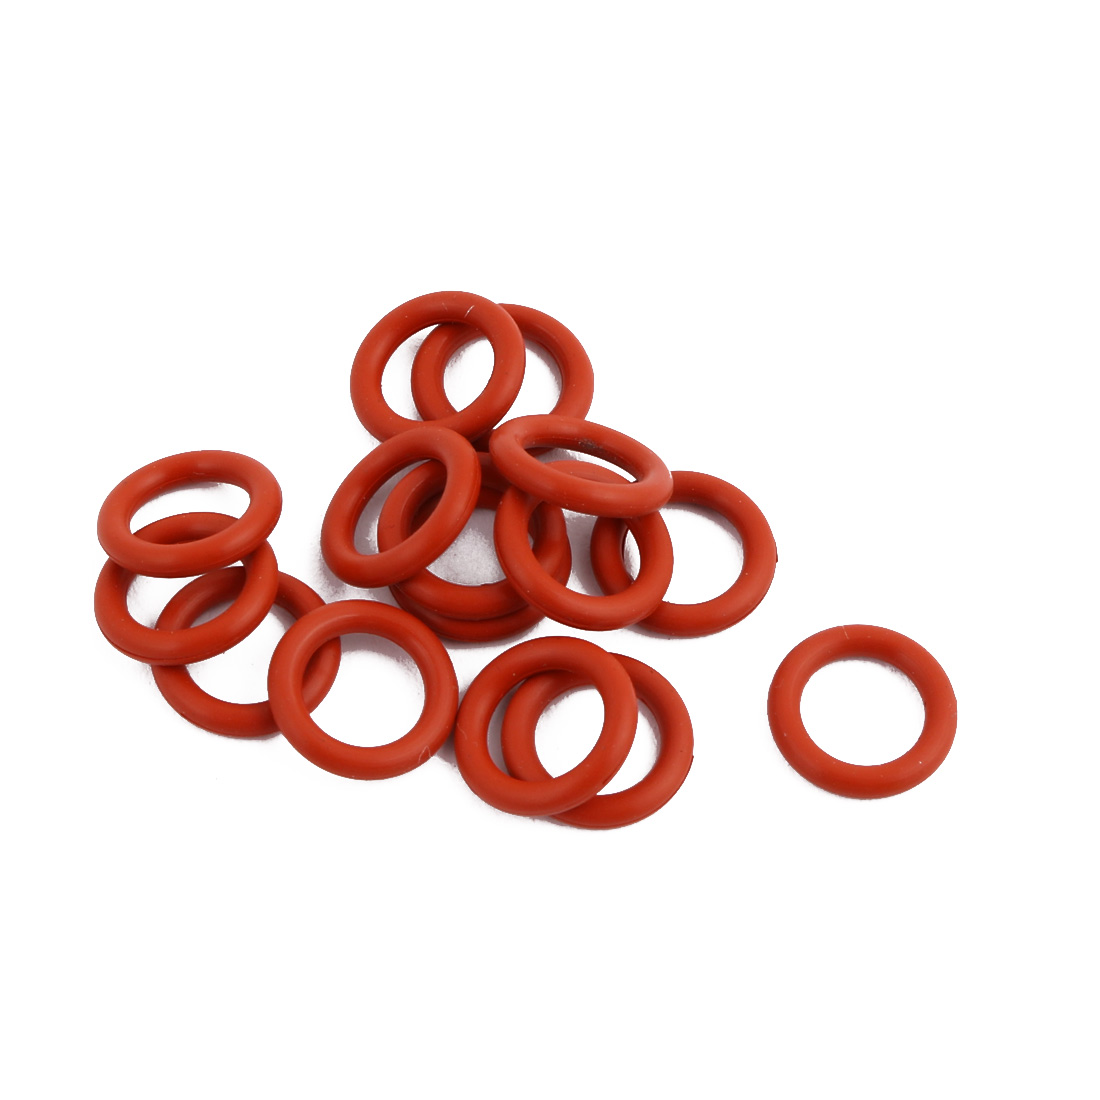 15Pcs Red Round Nitrile Butadiene Rubber NBR O-Ring 11mm OD 1.9mm Width